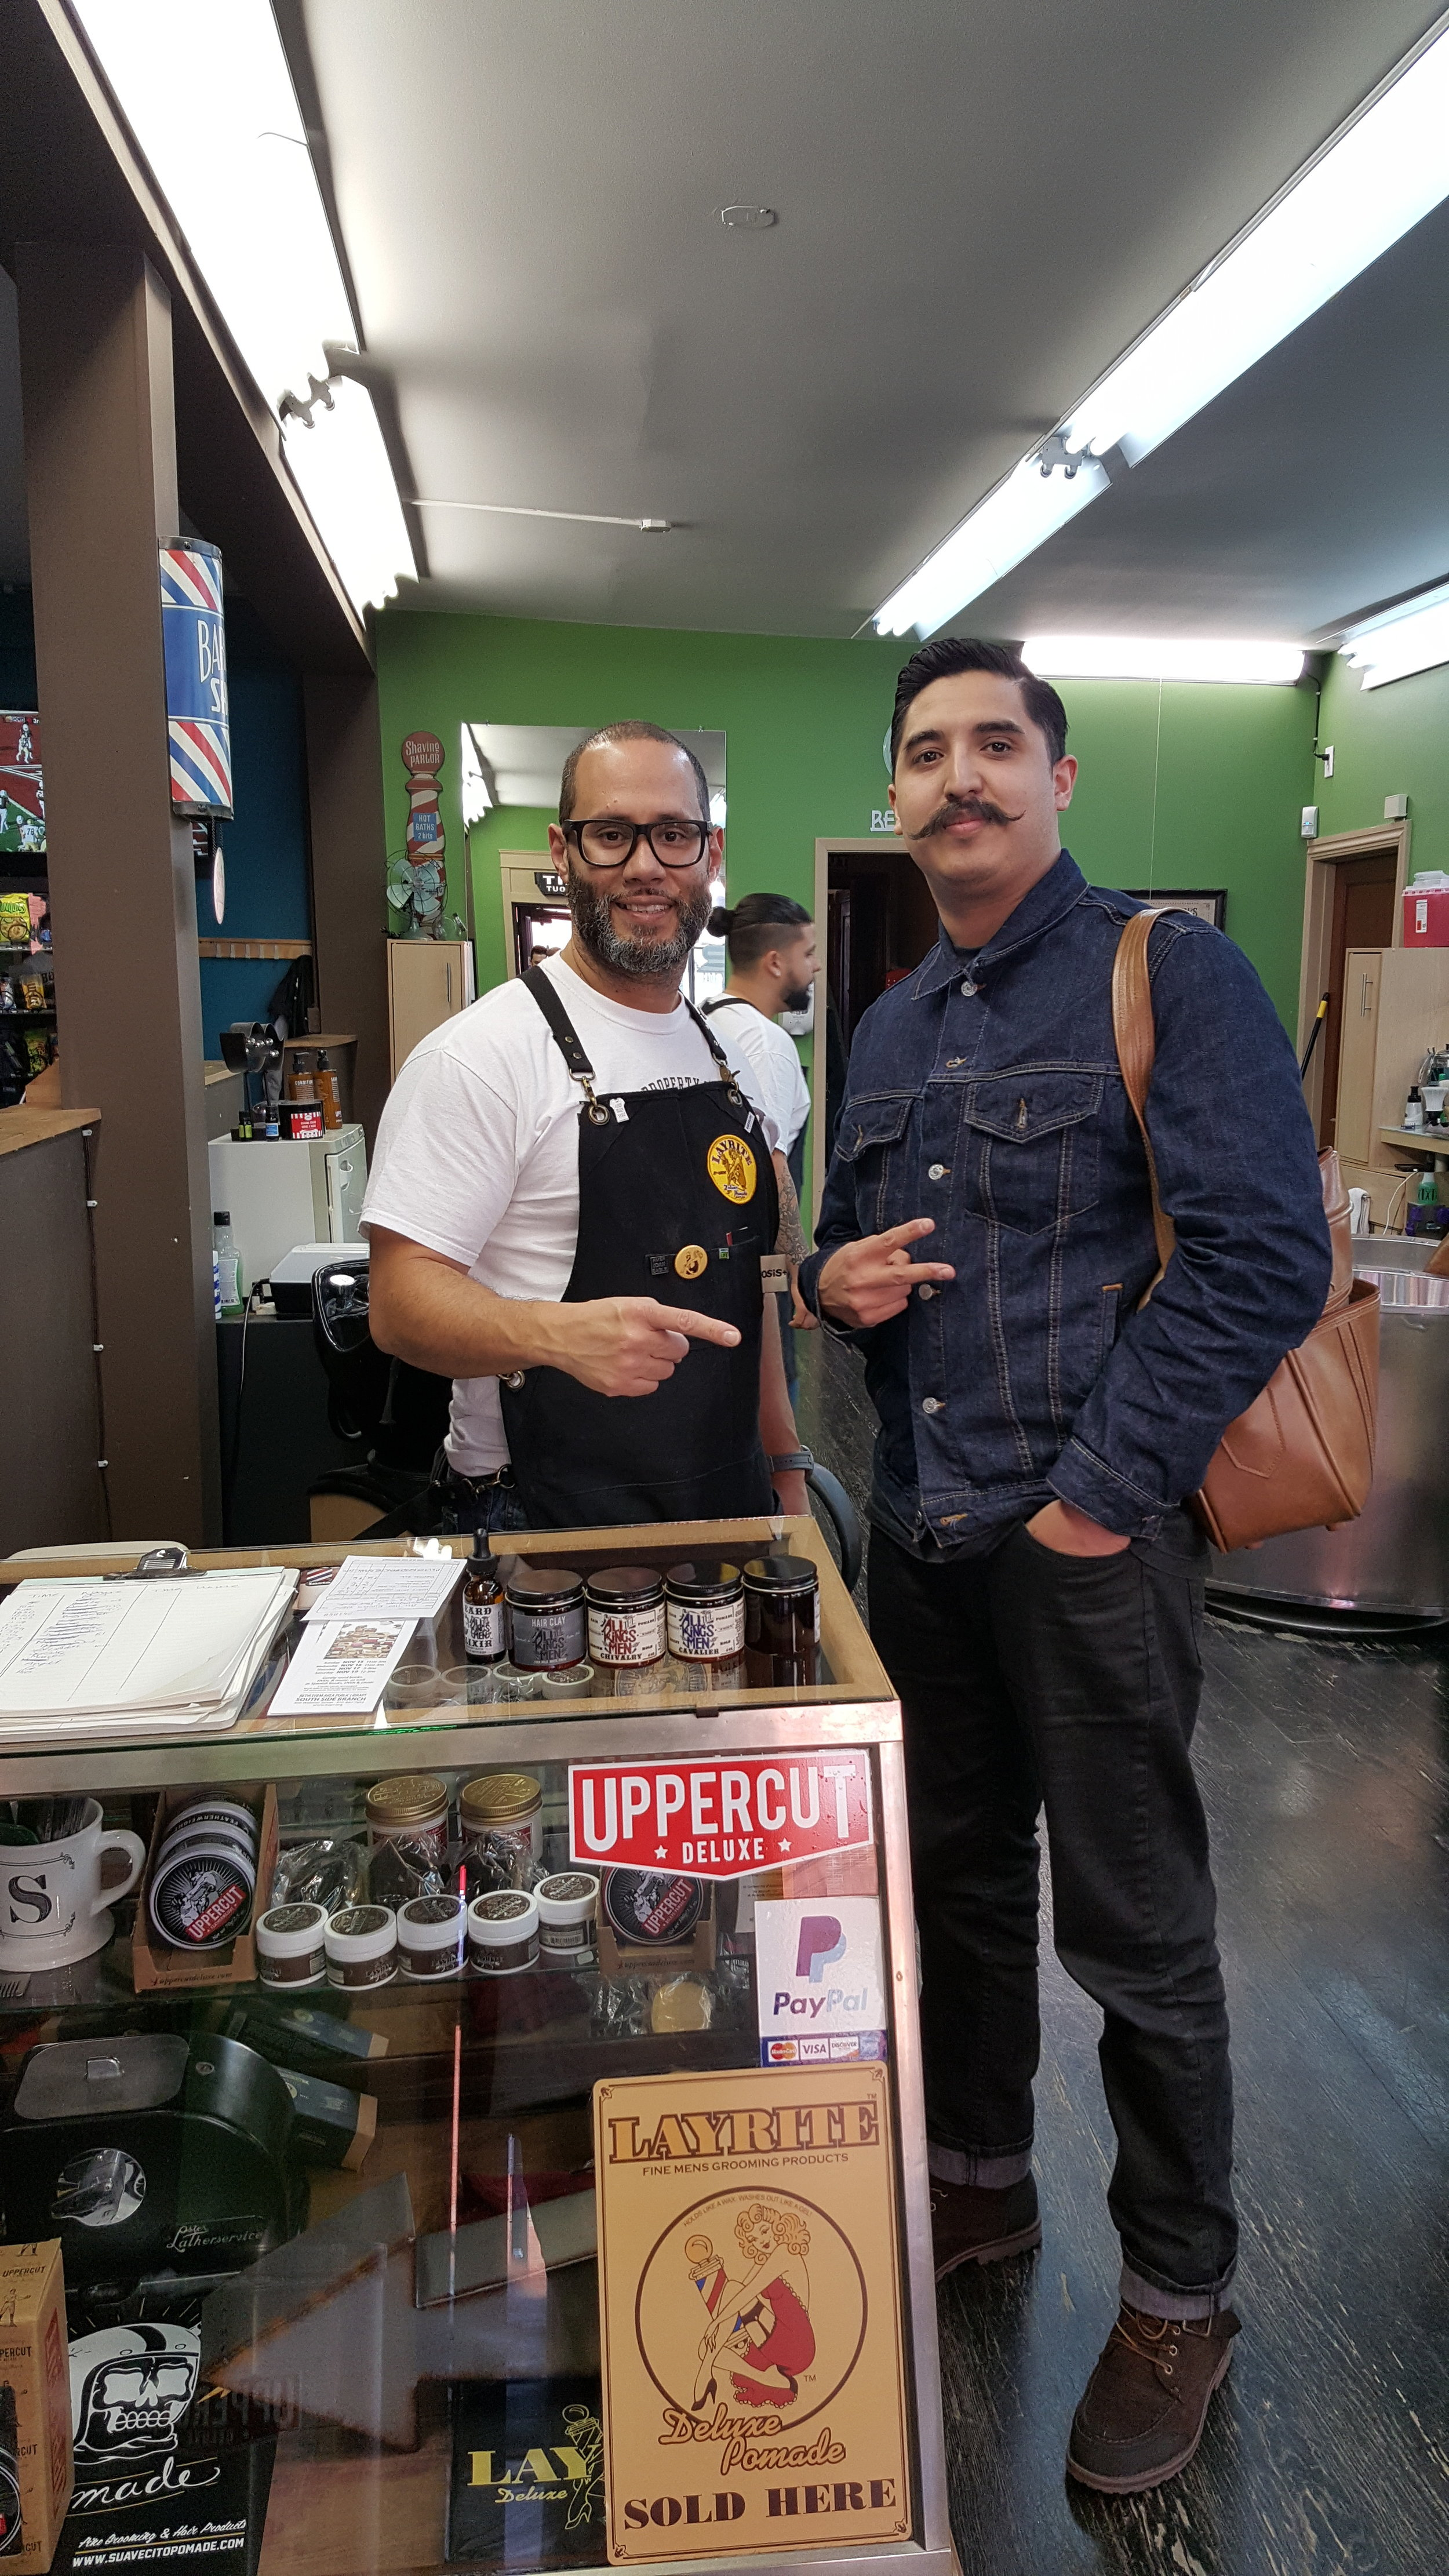 Wilfredo Soto age 43 ( Master Barber/ Tonsorial teacher) licensed certified.   Owner and Manger since 03 .